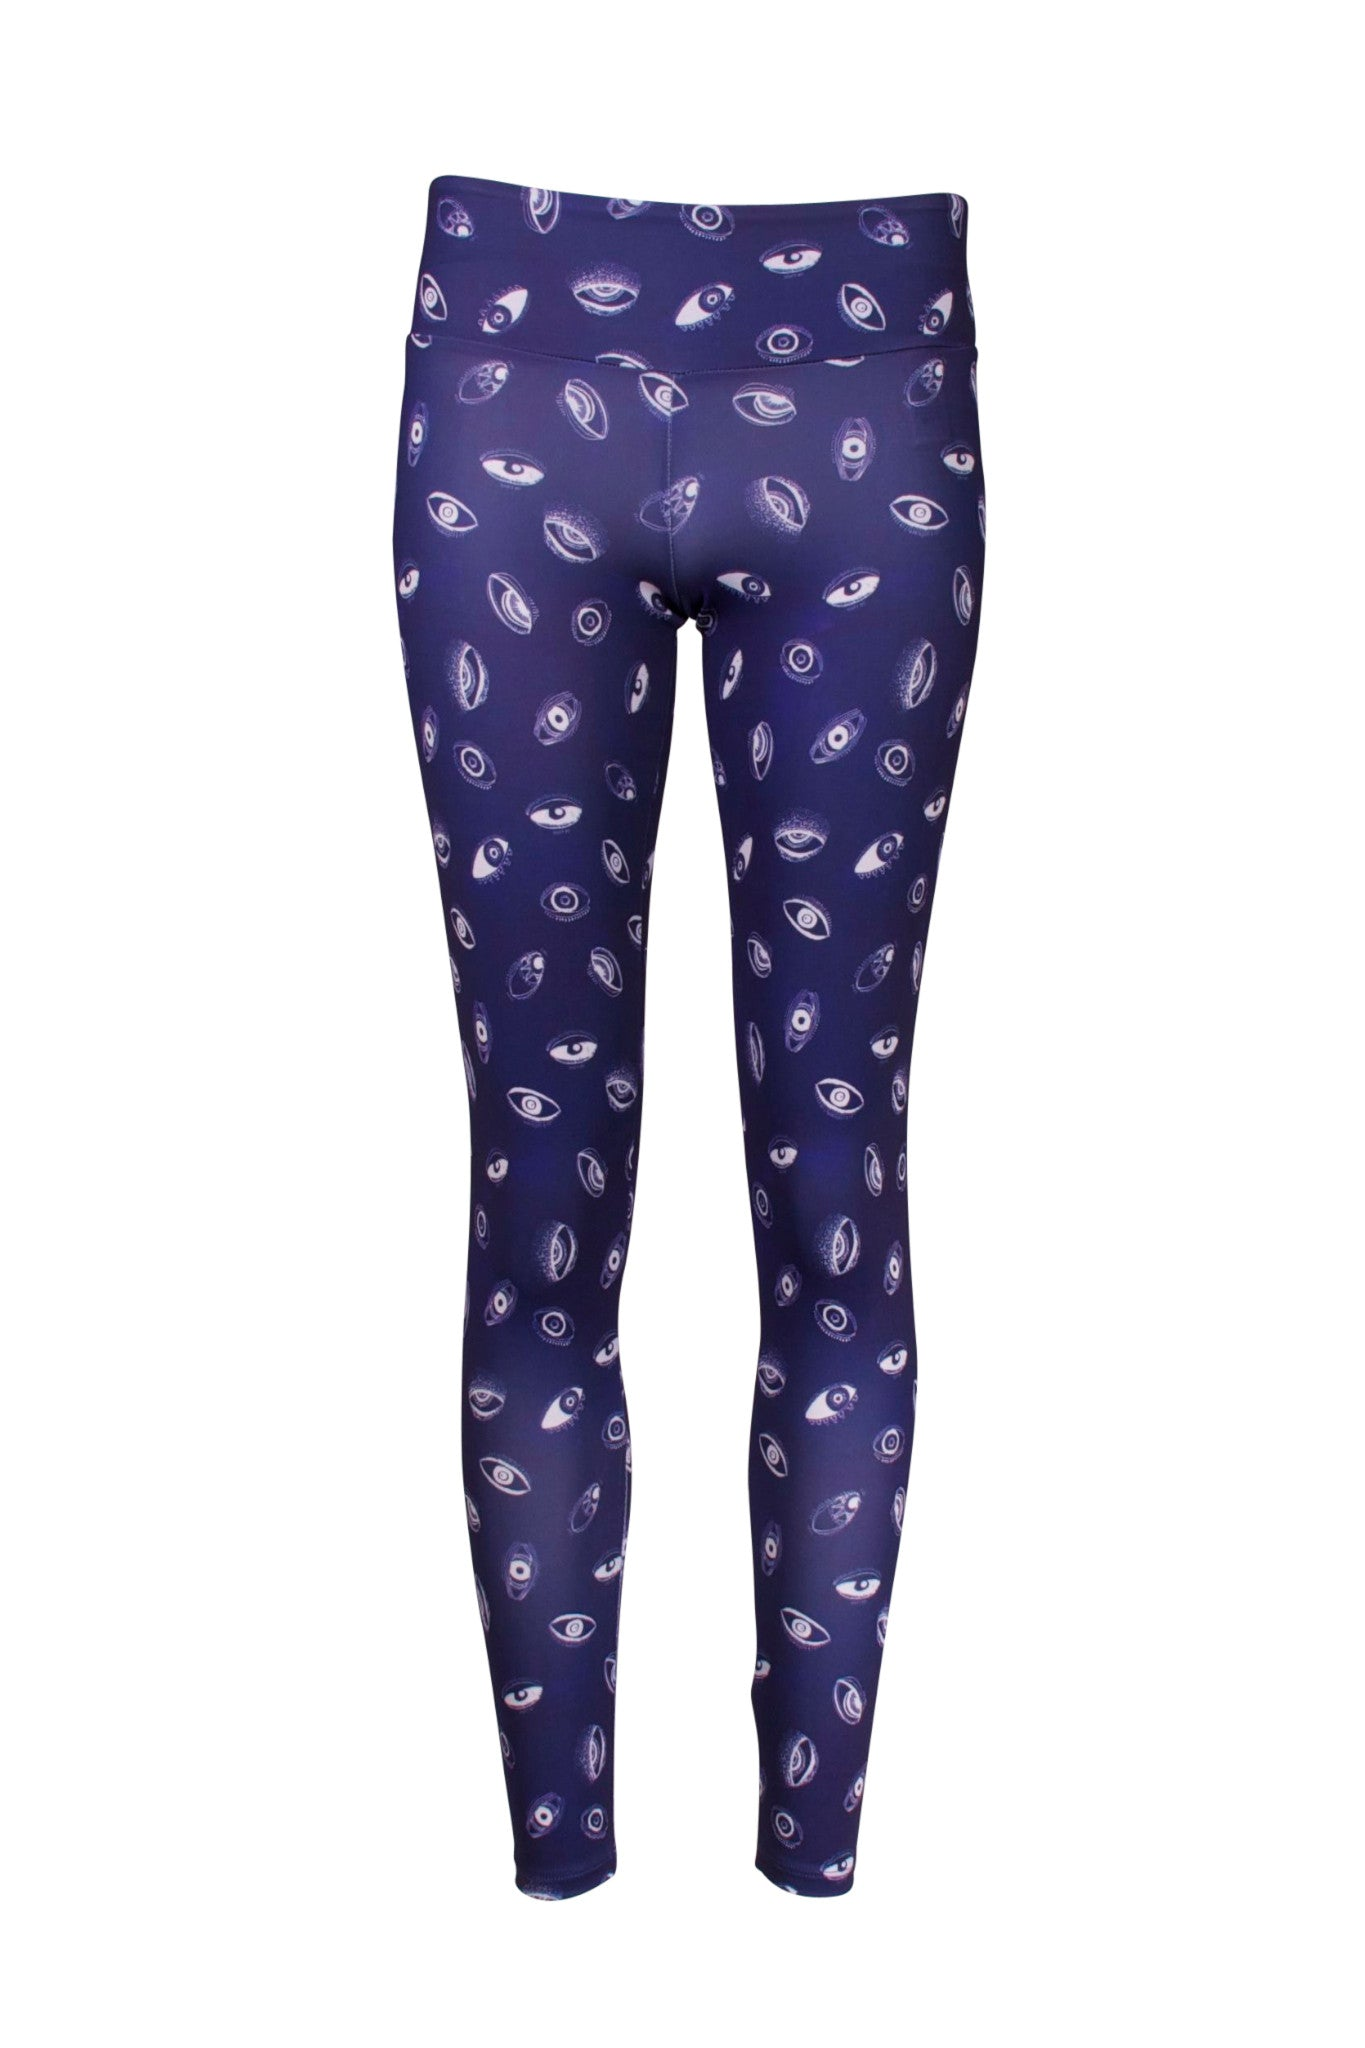 Matia Eye Blue Recycled Leggings - L